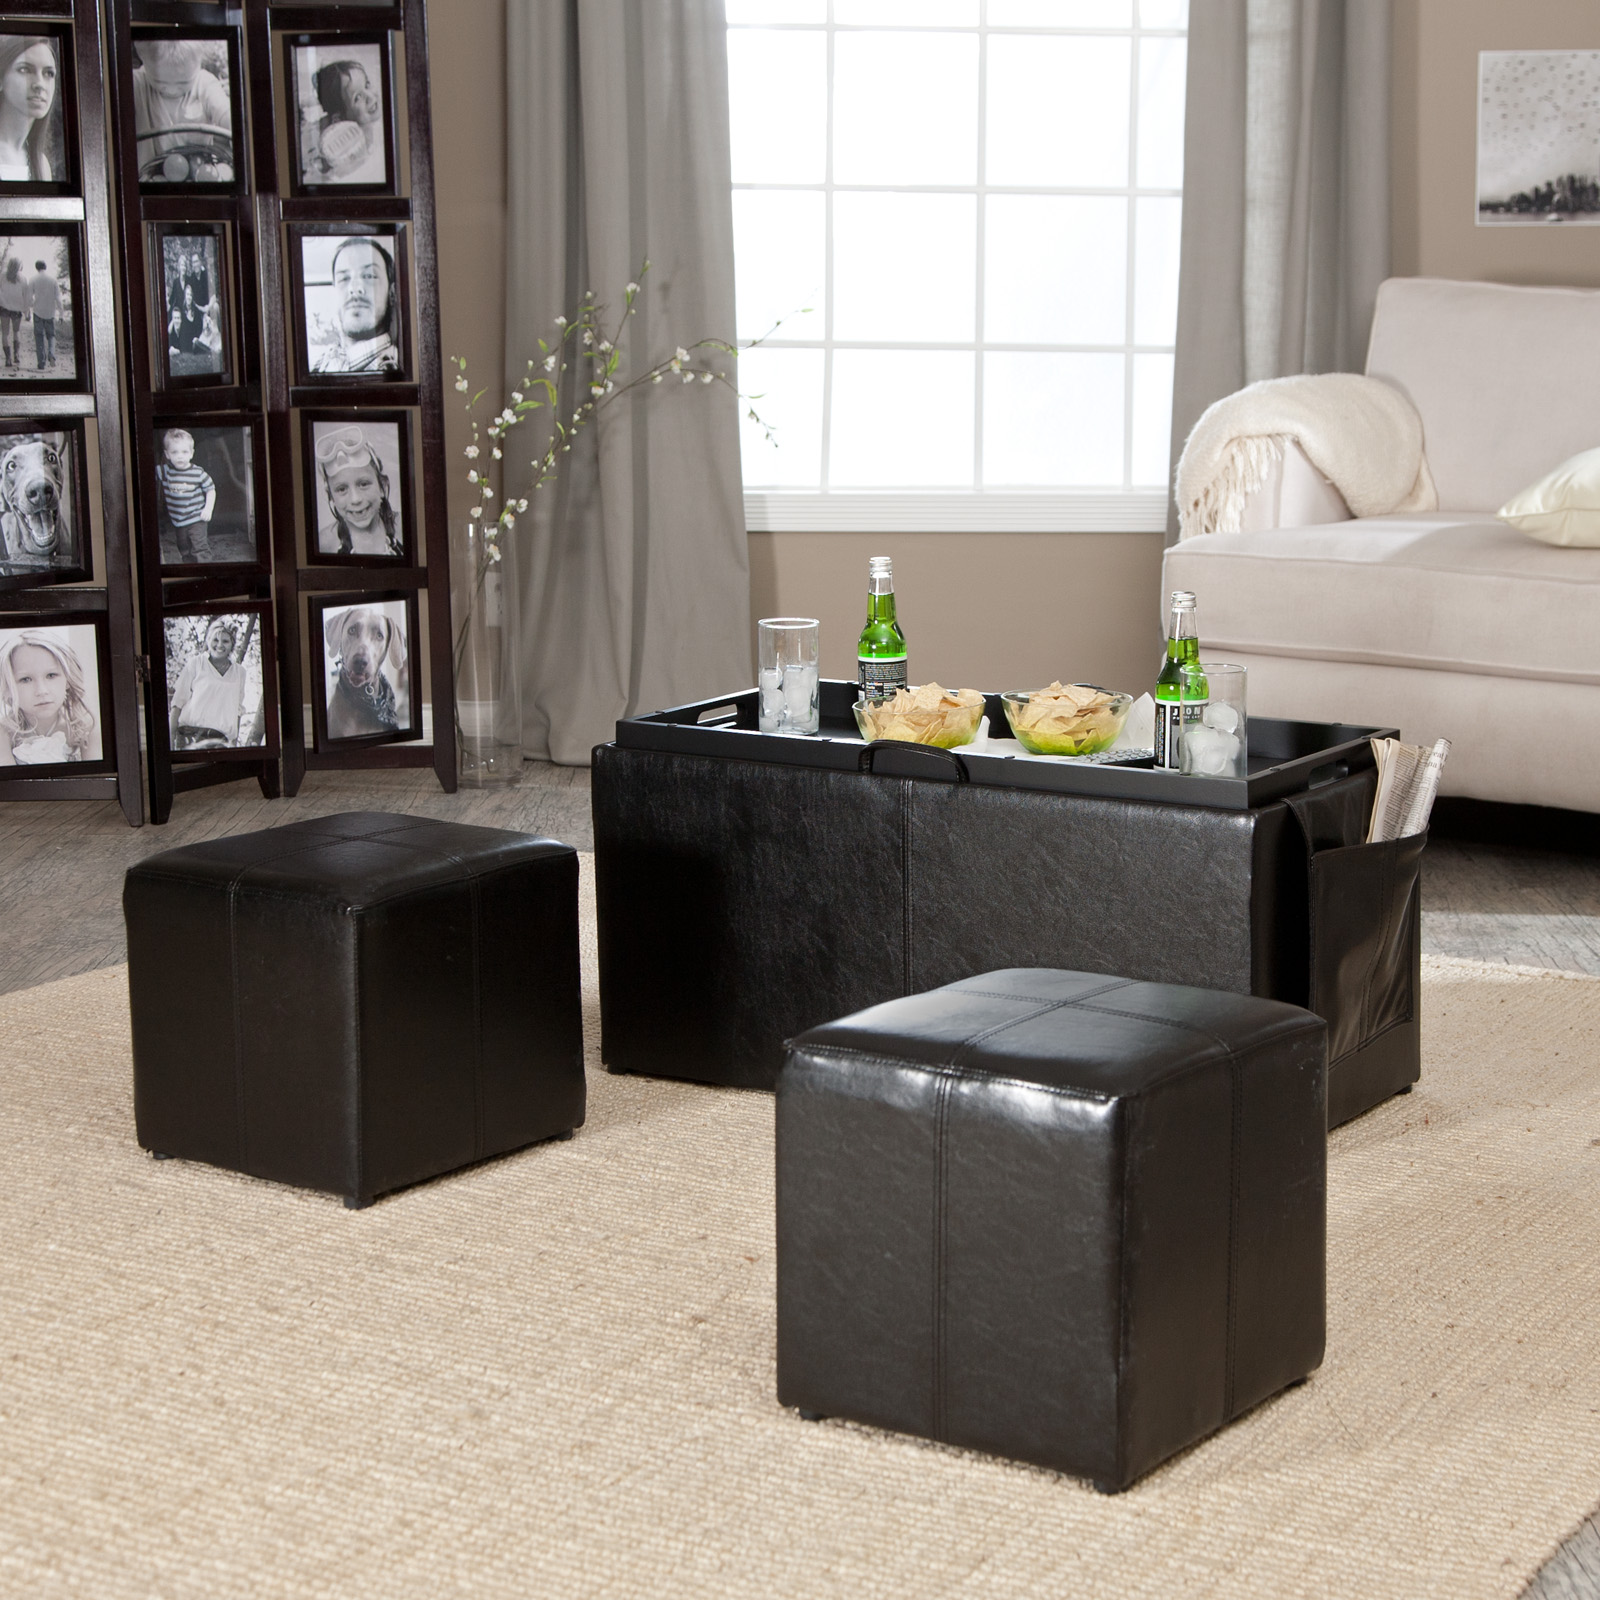 Hartley Coffee Table Storage Ottoman With Tray   Side Ottomans U0026 Side Pocket